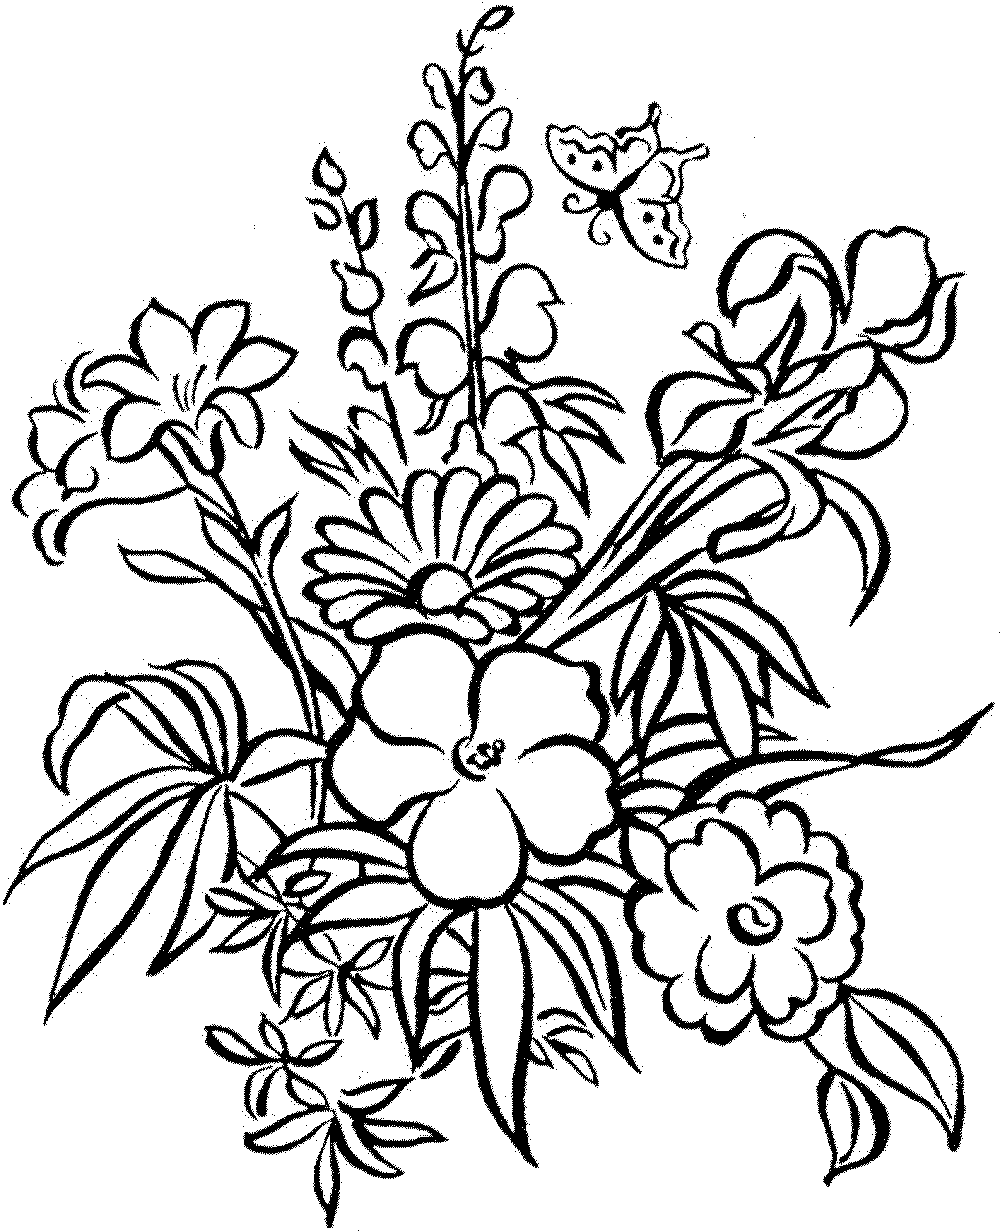 1000x1231 Download Coloring Pages. Flowers Coloring Pages Flowers Coloring